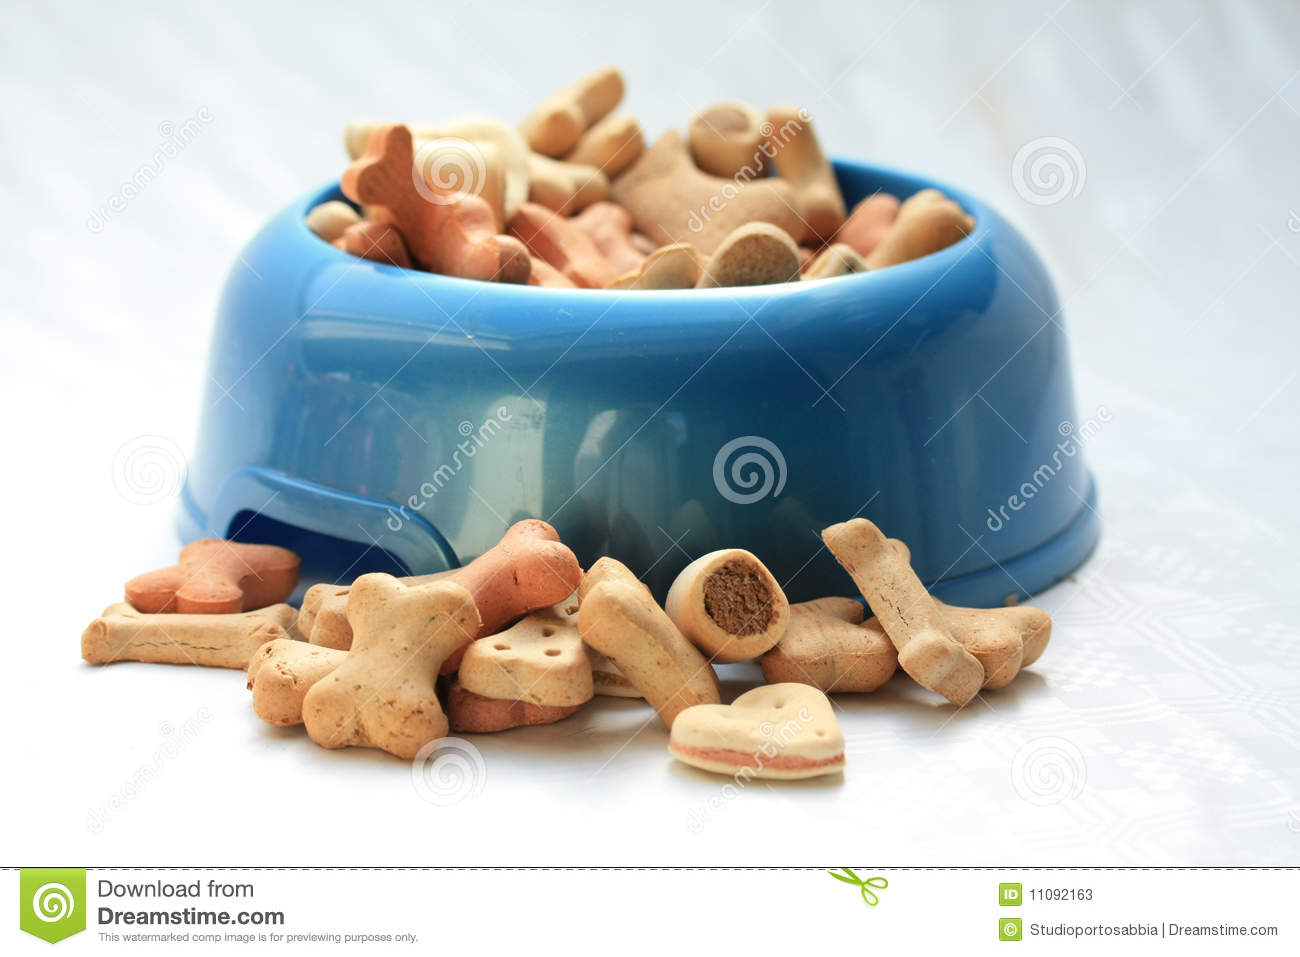 Dogbowl with cookies